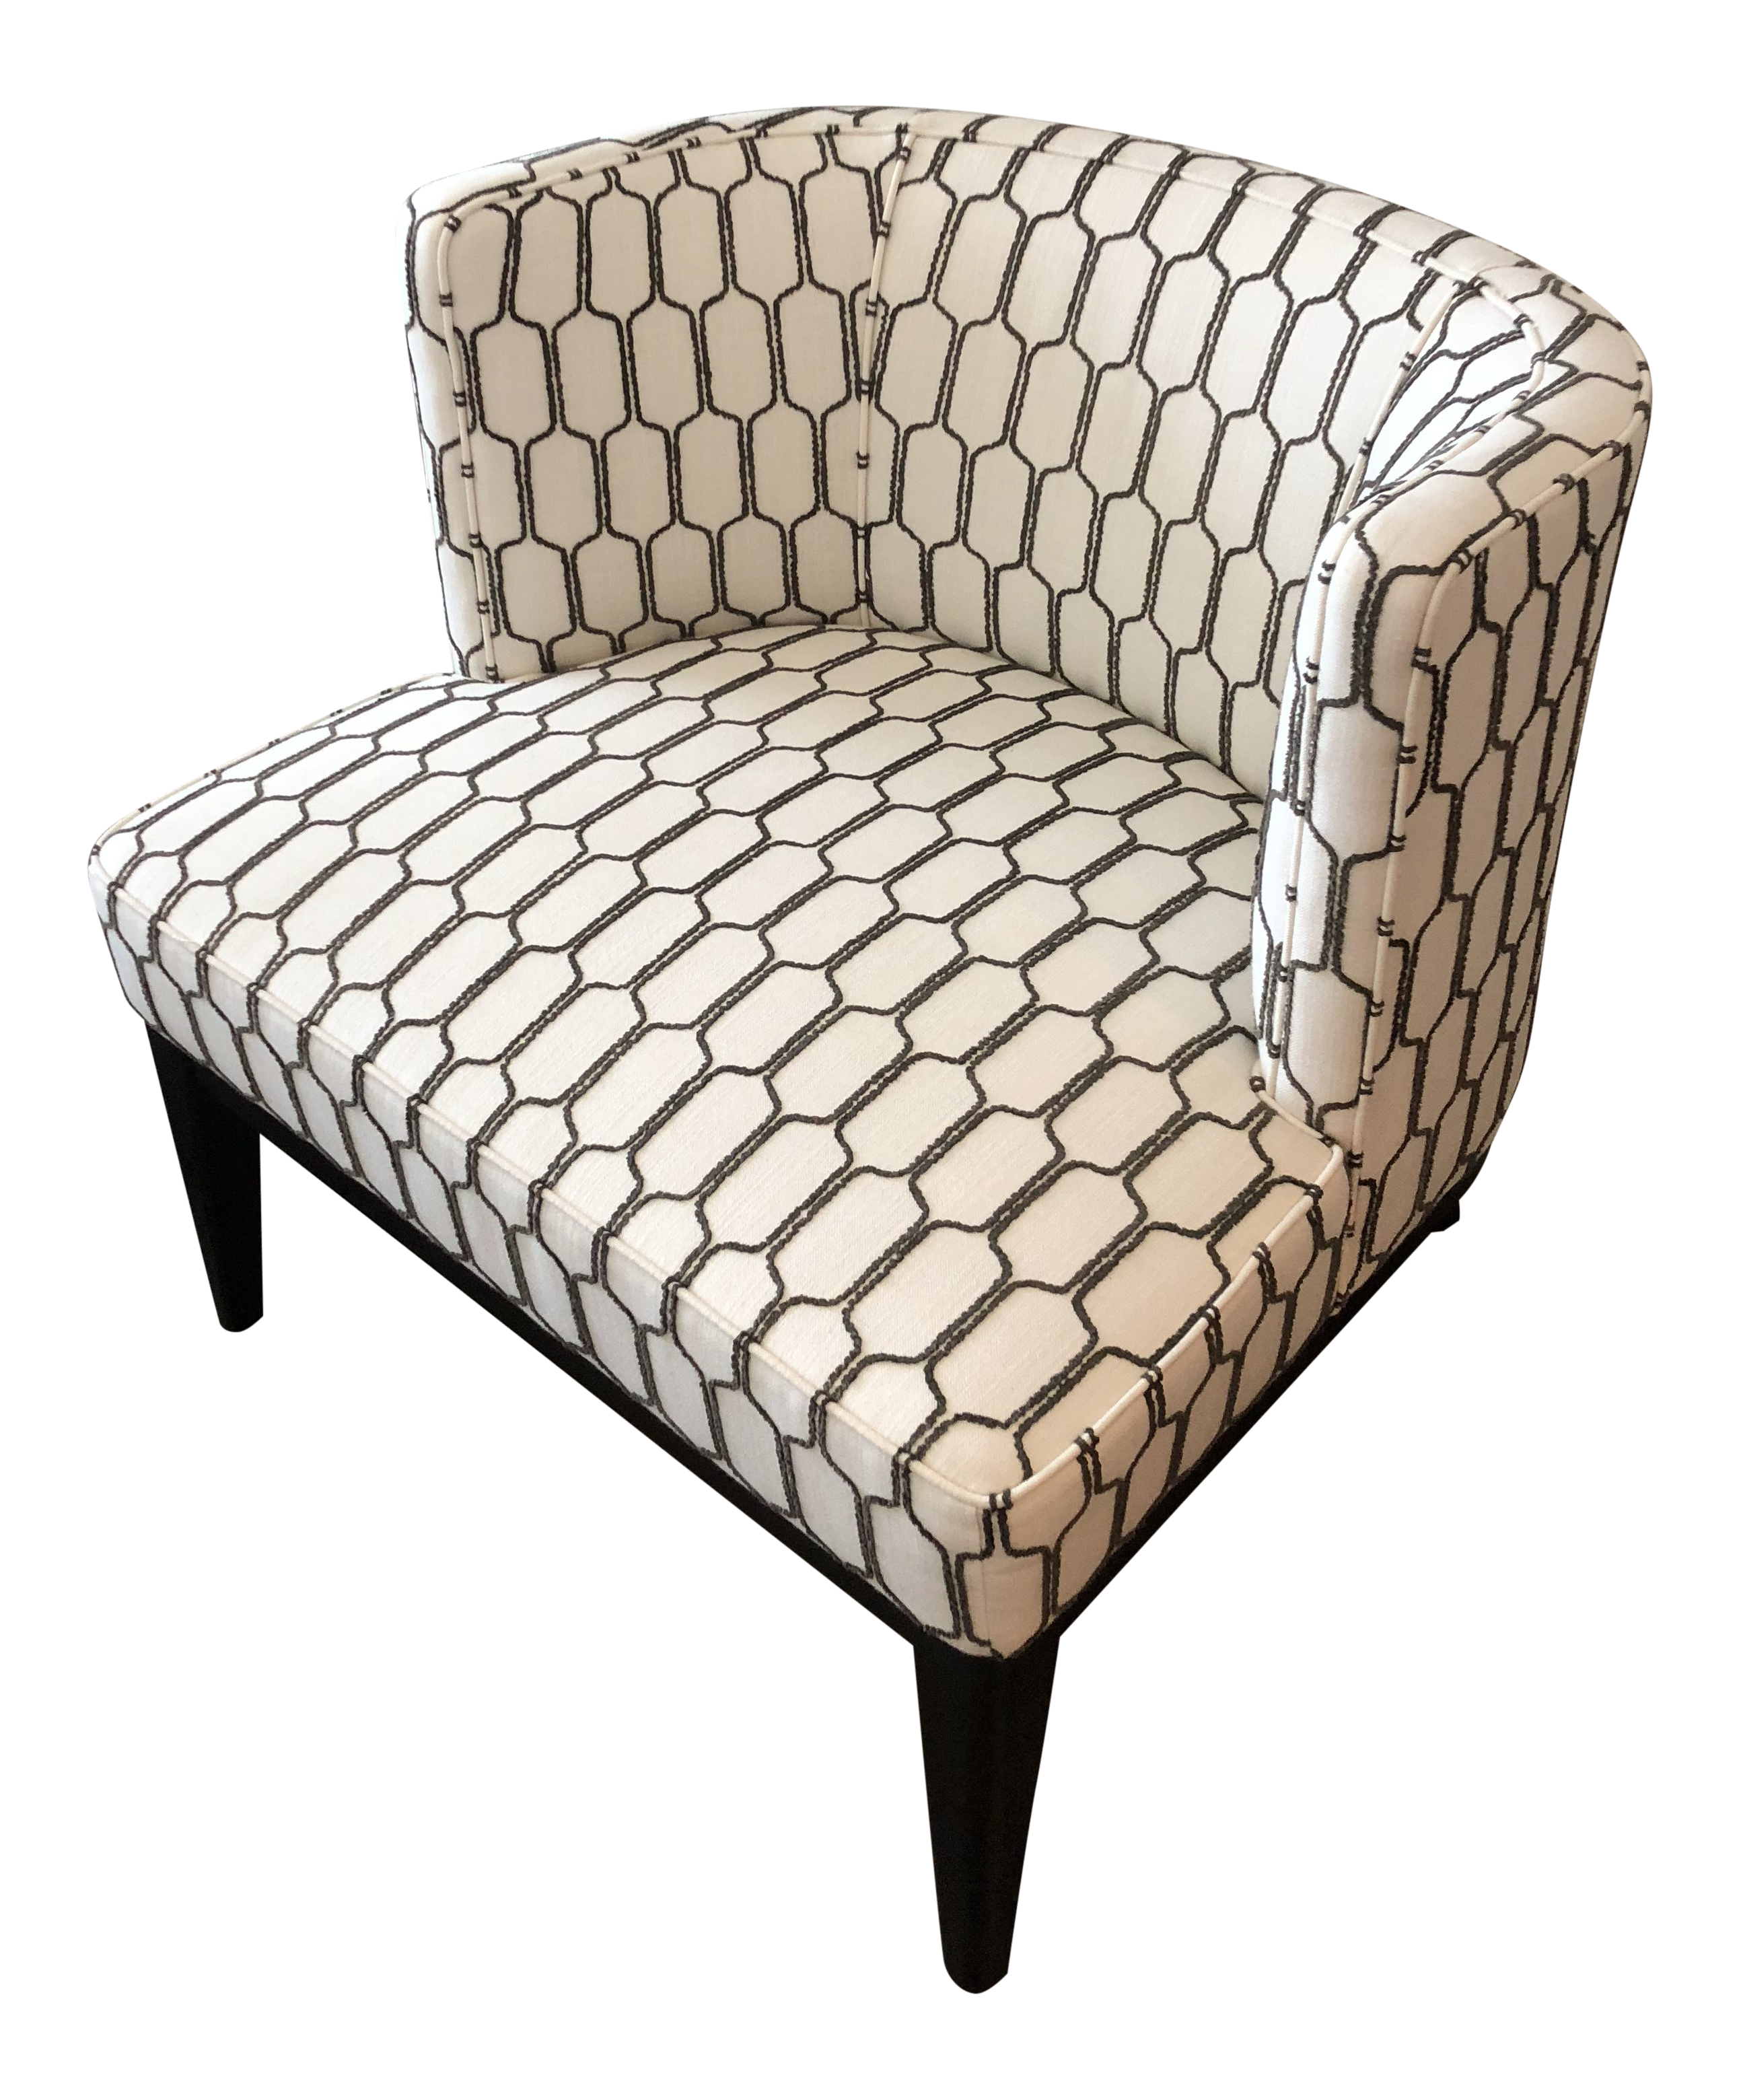 Crate u0026 Barrel Grayson Chair  sc 1 st  Chairish & Gently Used Crate u0026 Barrel Furniture   Up to 43% off at Chairish